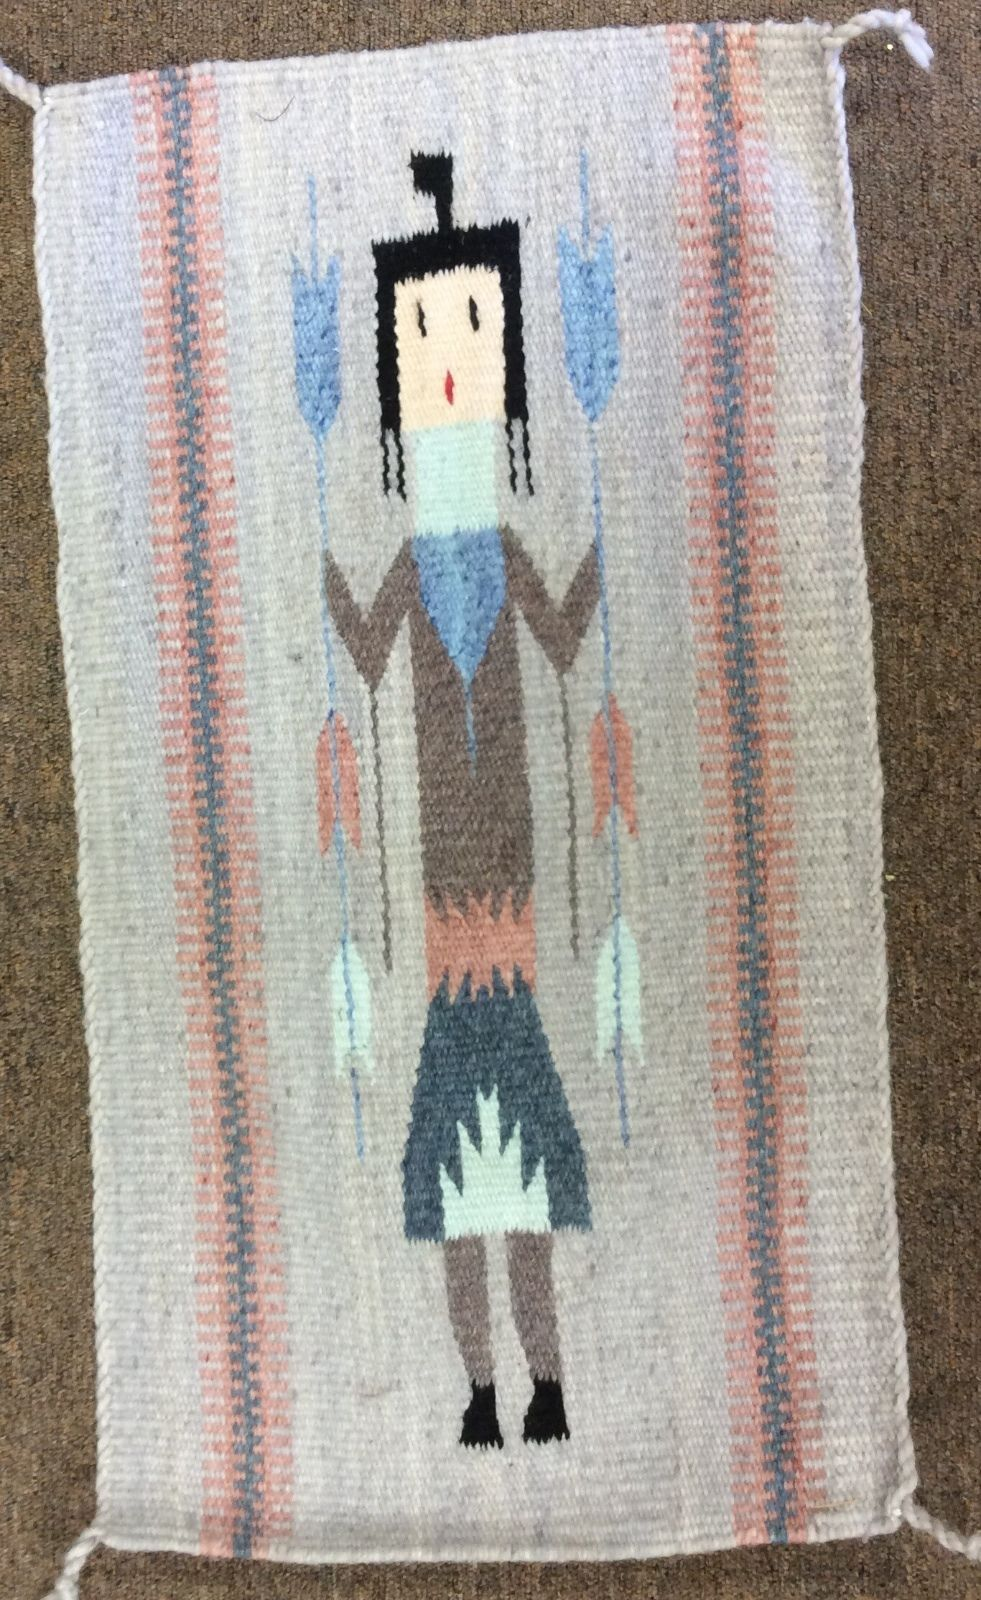 Kachina doll weaving handwoven rug wall hanging decor 100 for Decor international handwoven rugs